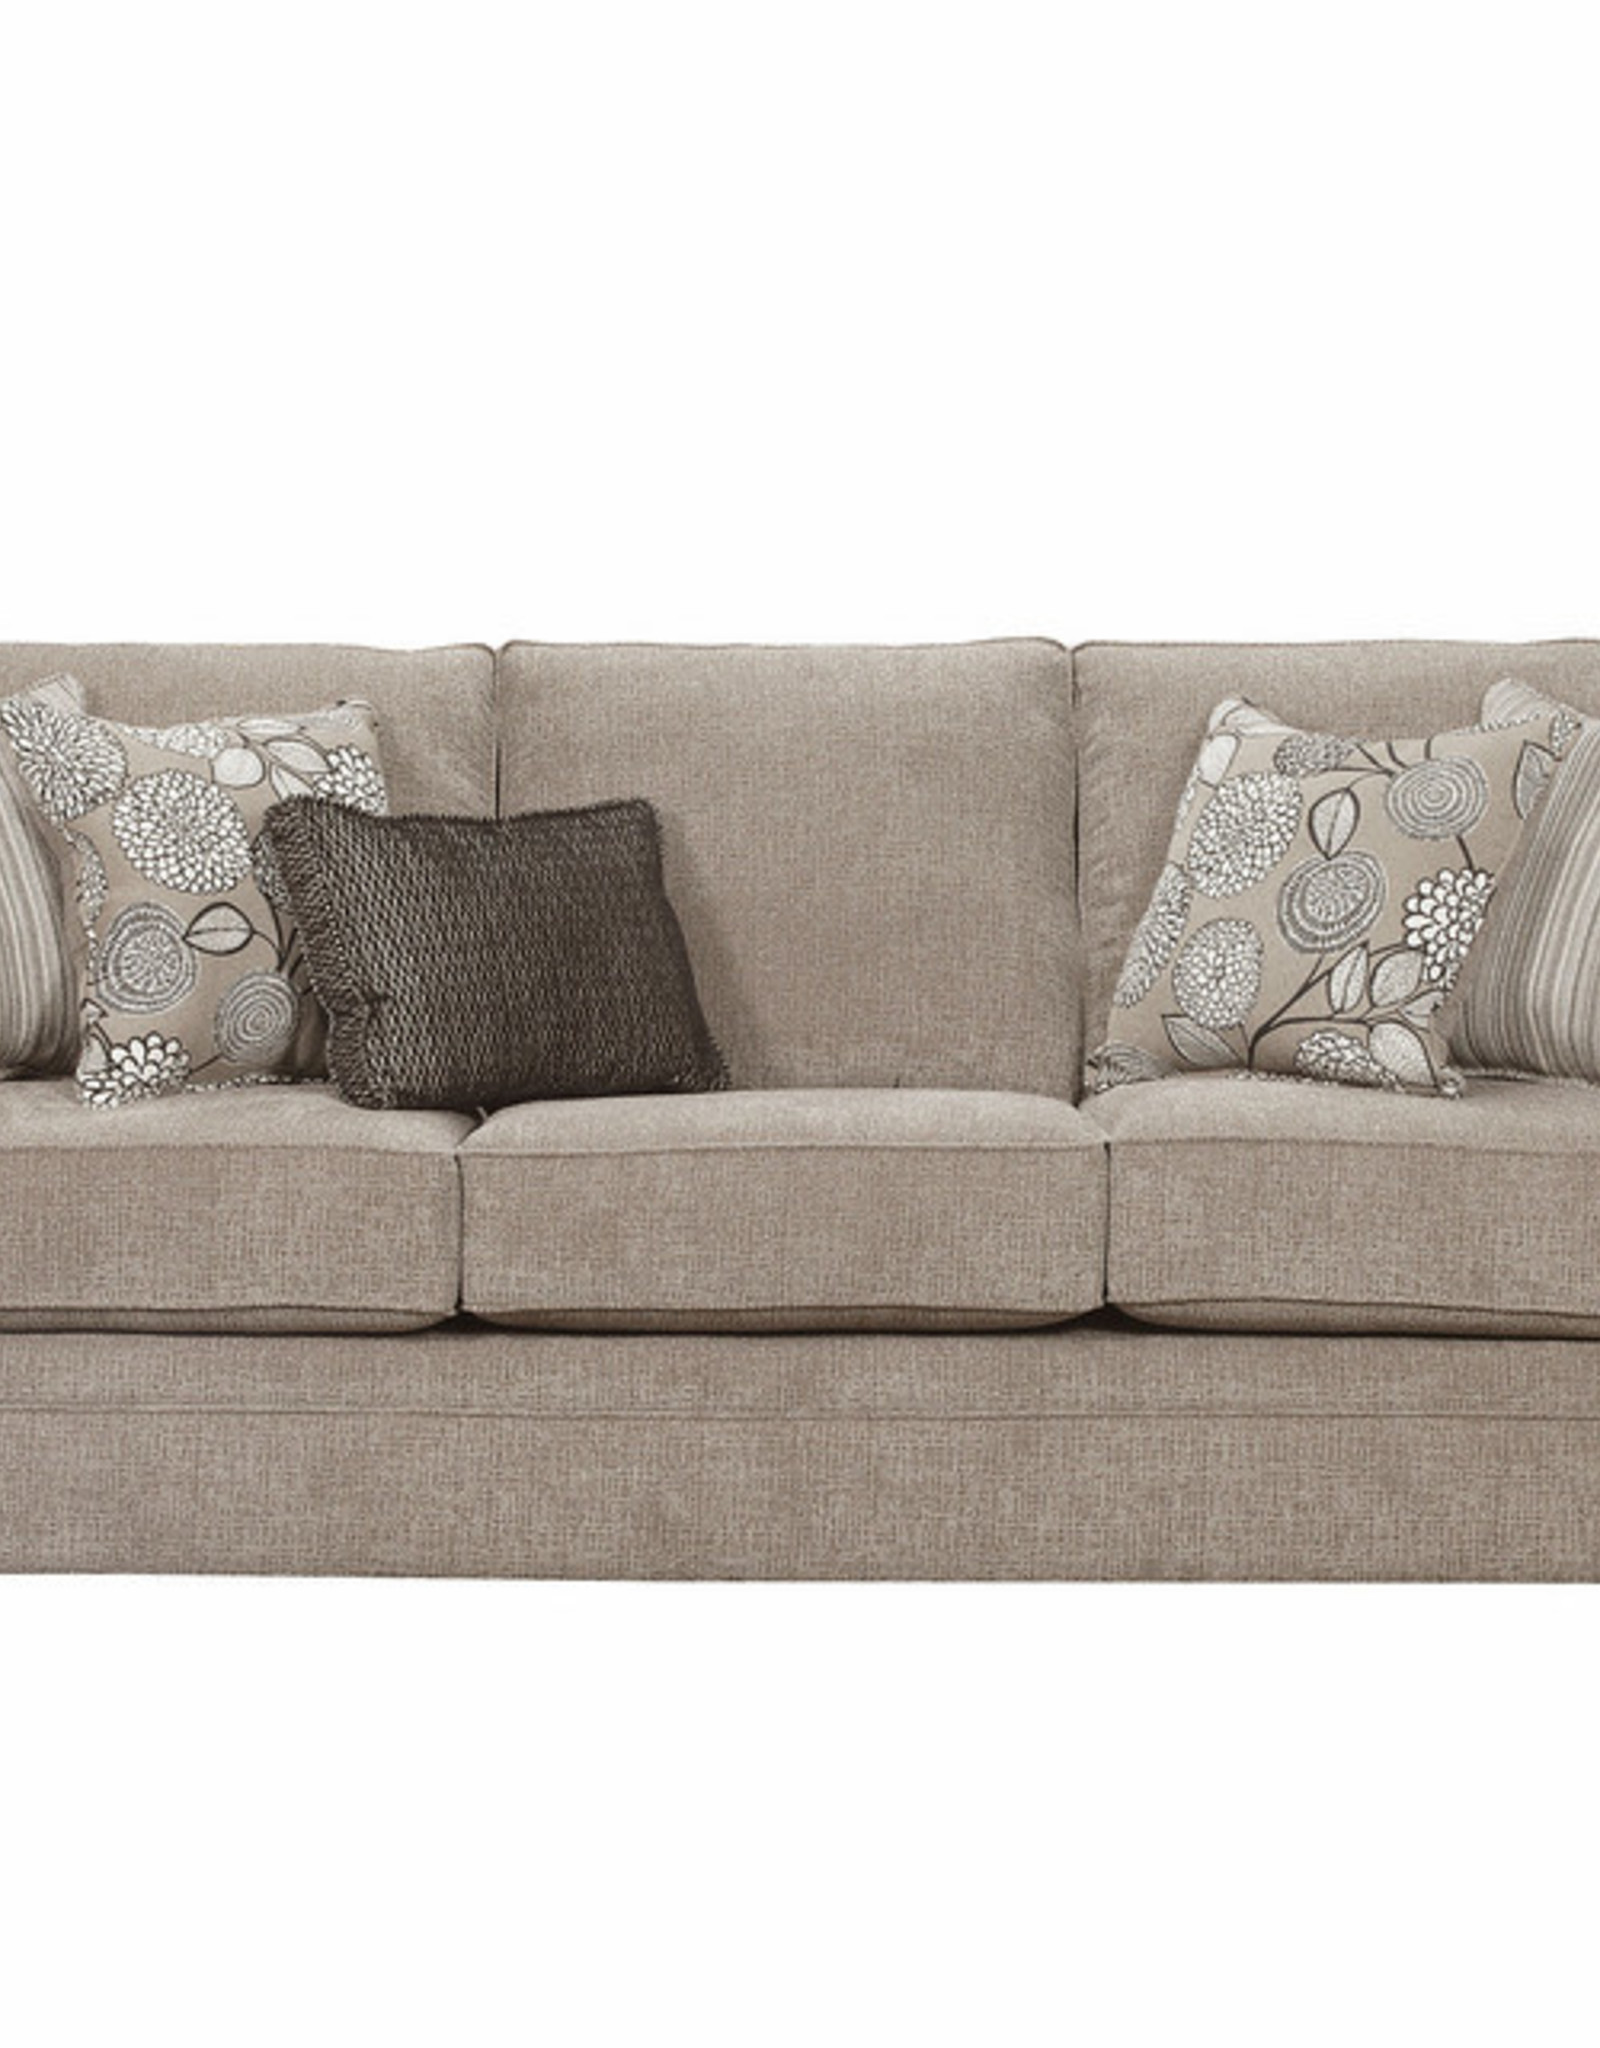 United Macey Pewter Sofa and Loveseat Set